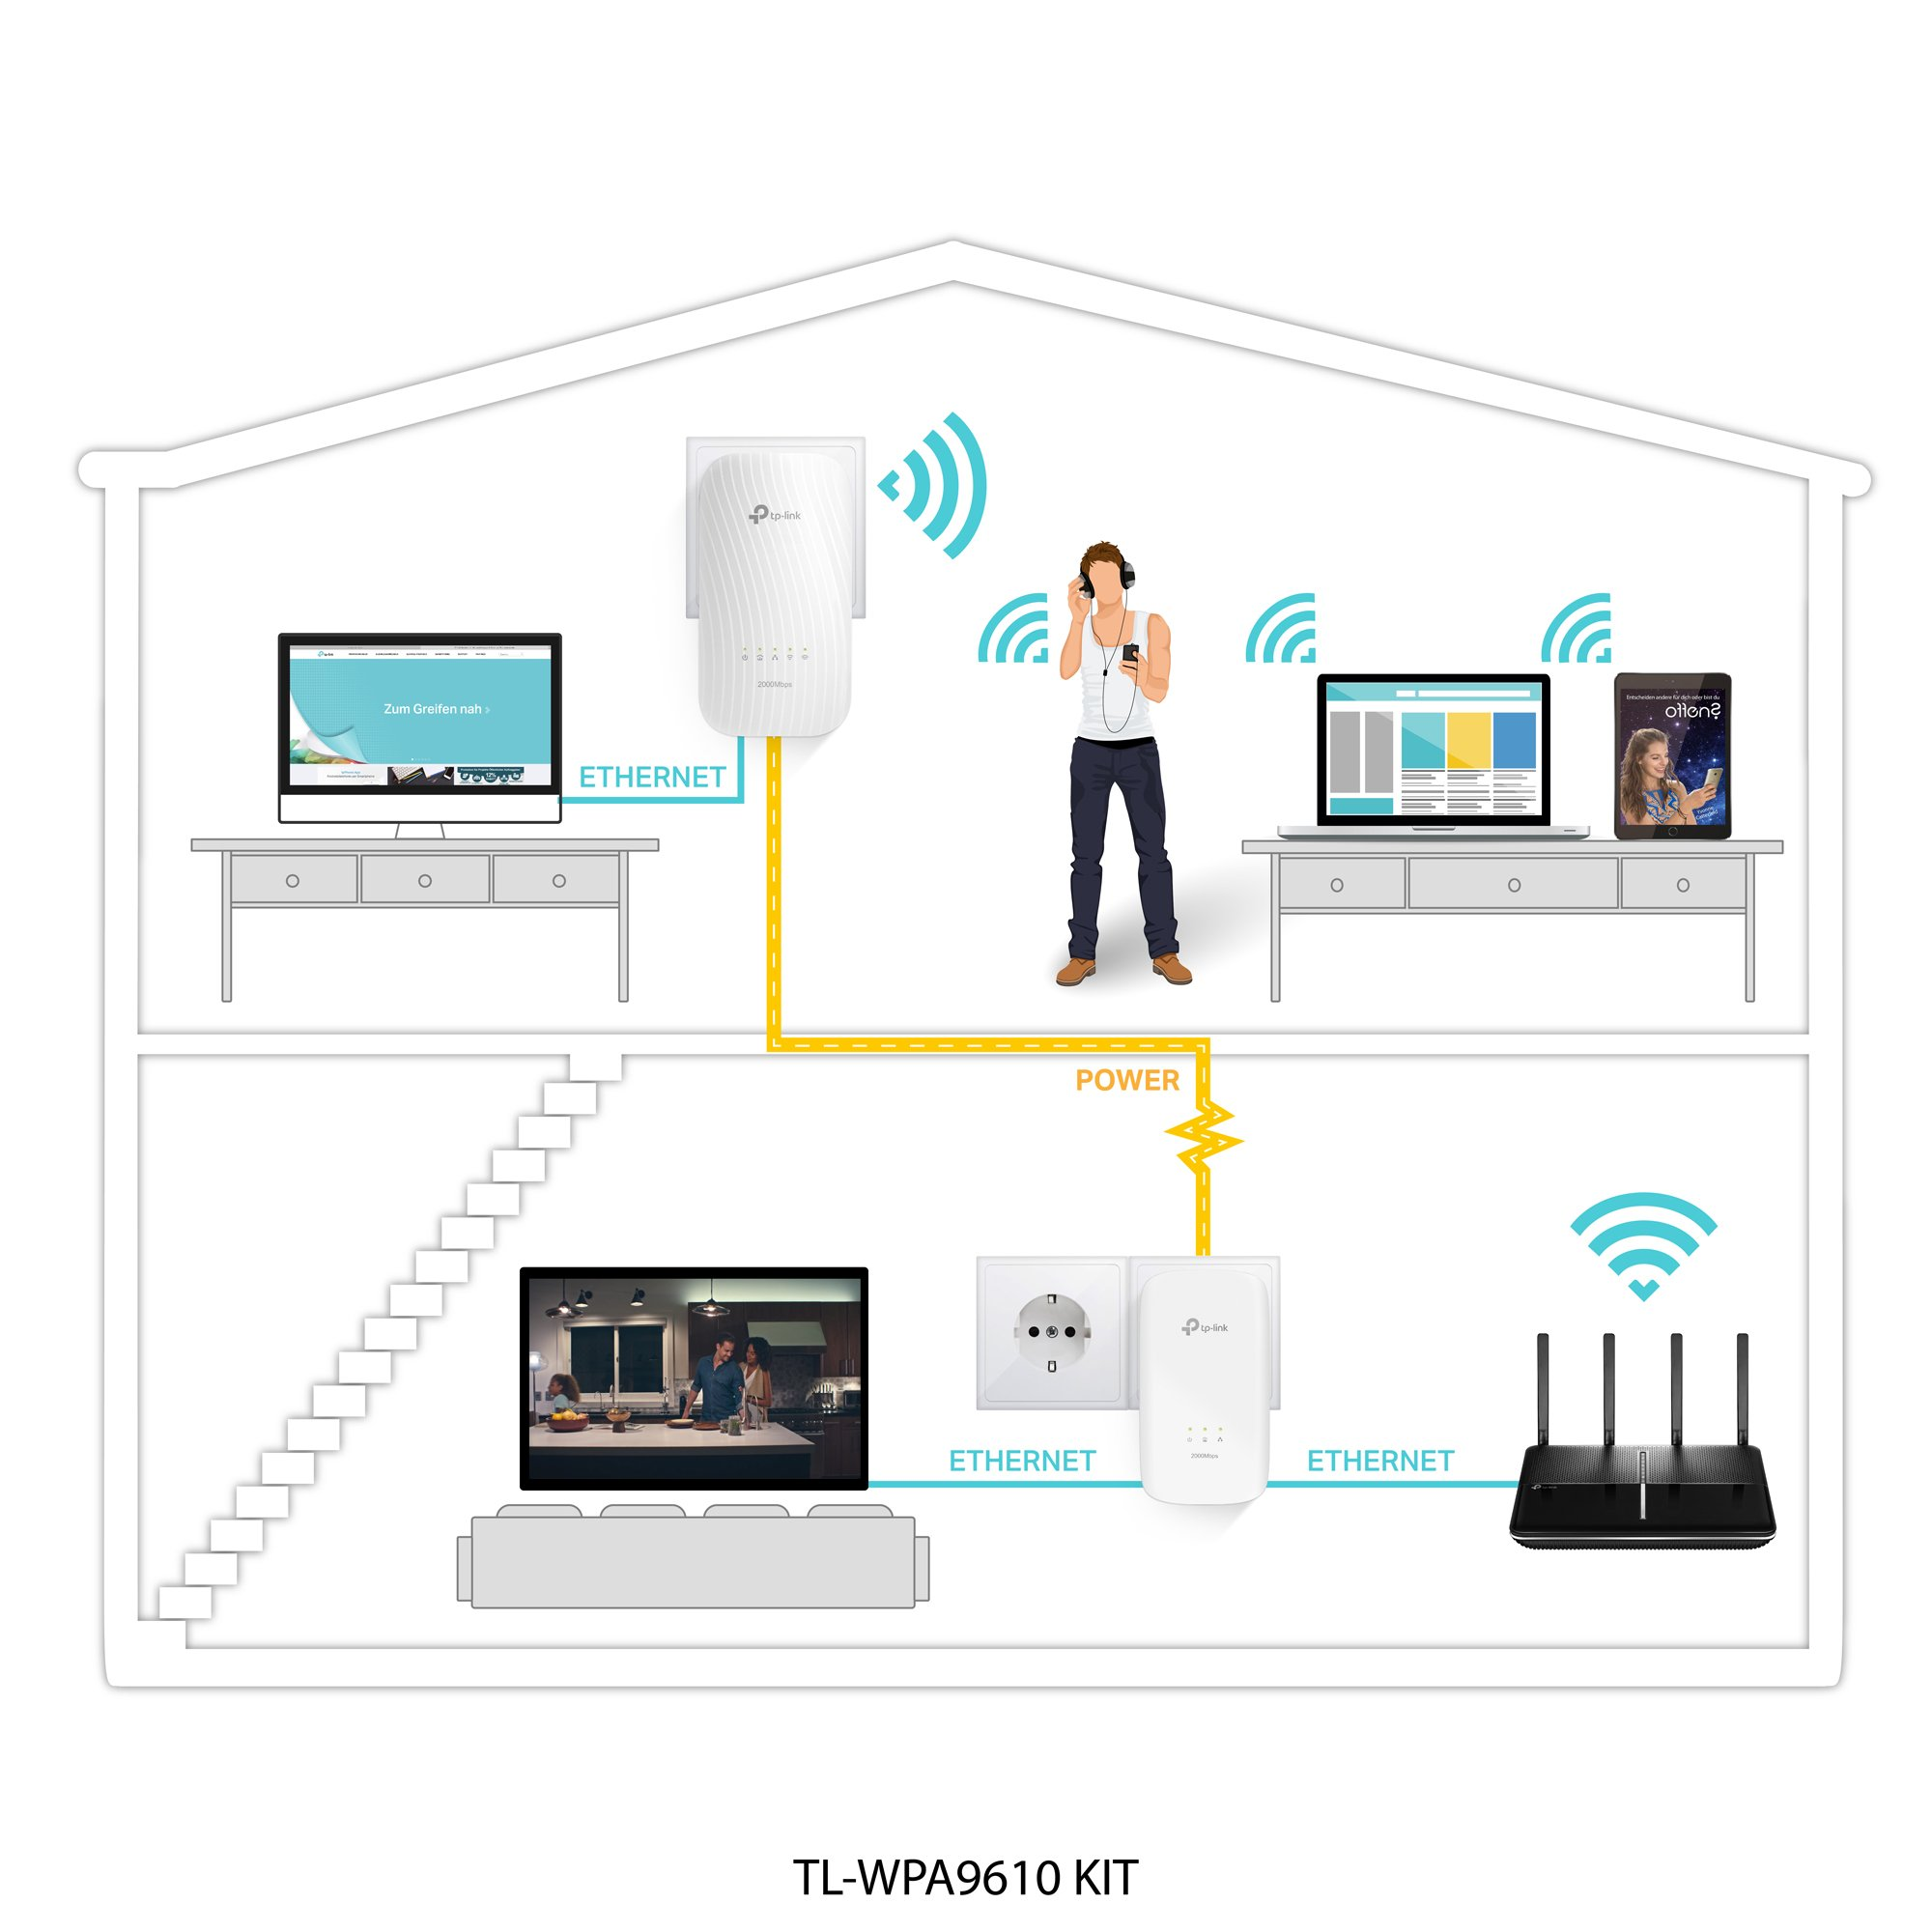 TP-Link AV2000 / AC1200 Gigabit Powerline AC Wi-Fi Kit | HomePlug AV2 Technology | Plug, Pair, and Play (TL-WPA9610 KIT) by TP-Link